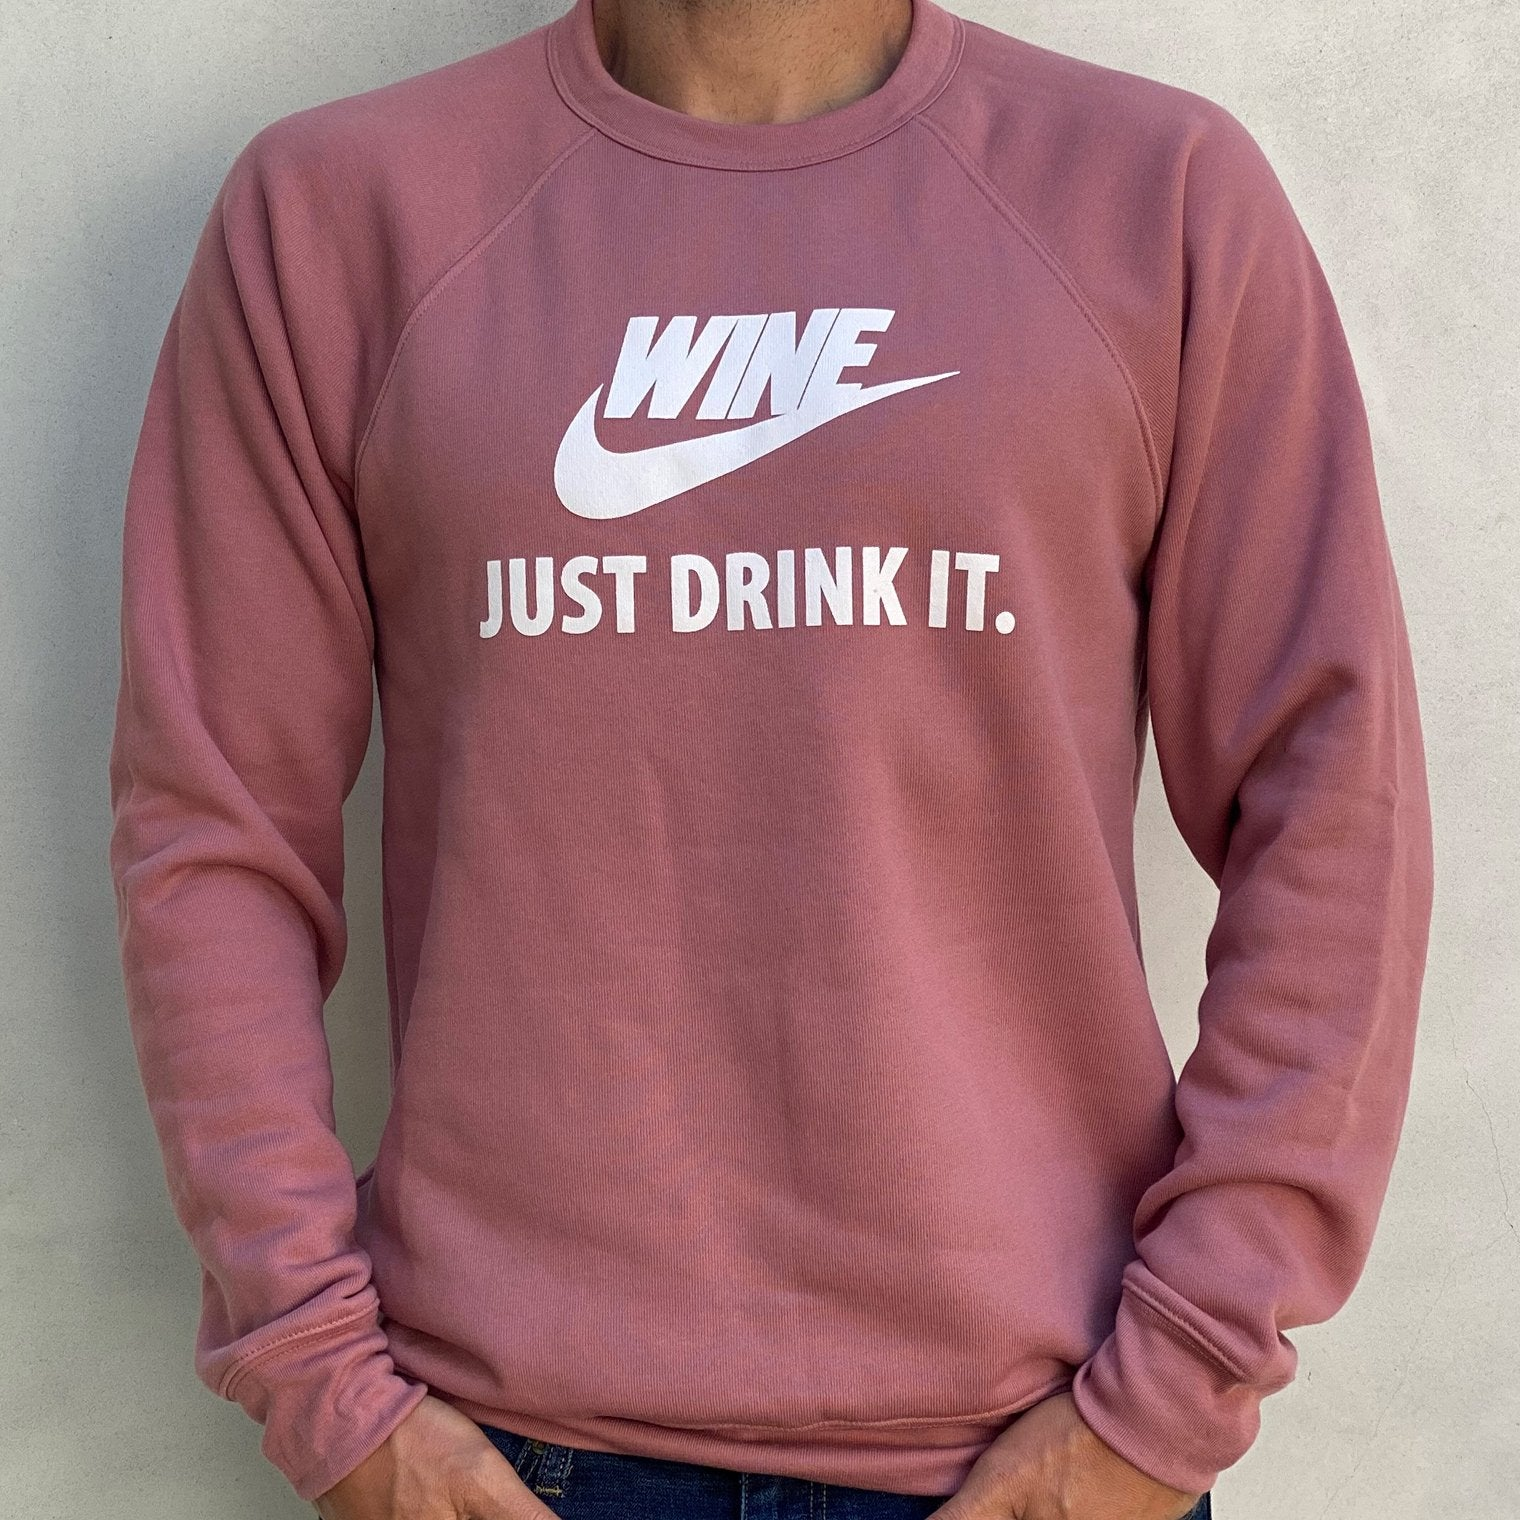 GARBER wine just drink it crewneck sweatshirt pink